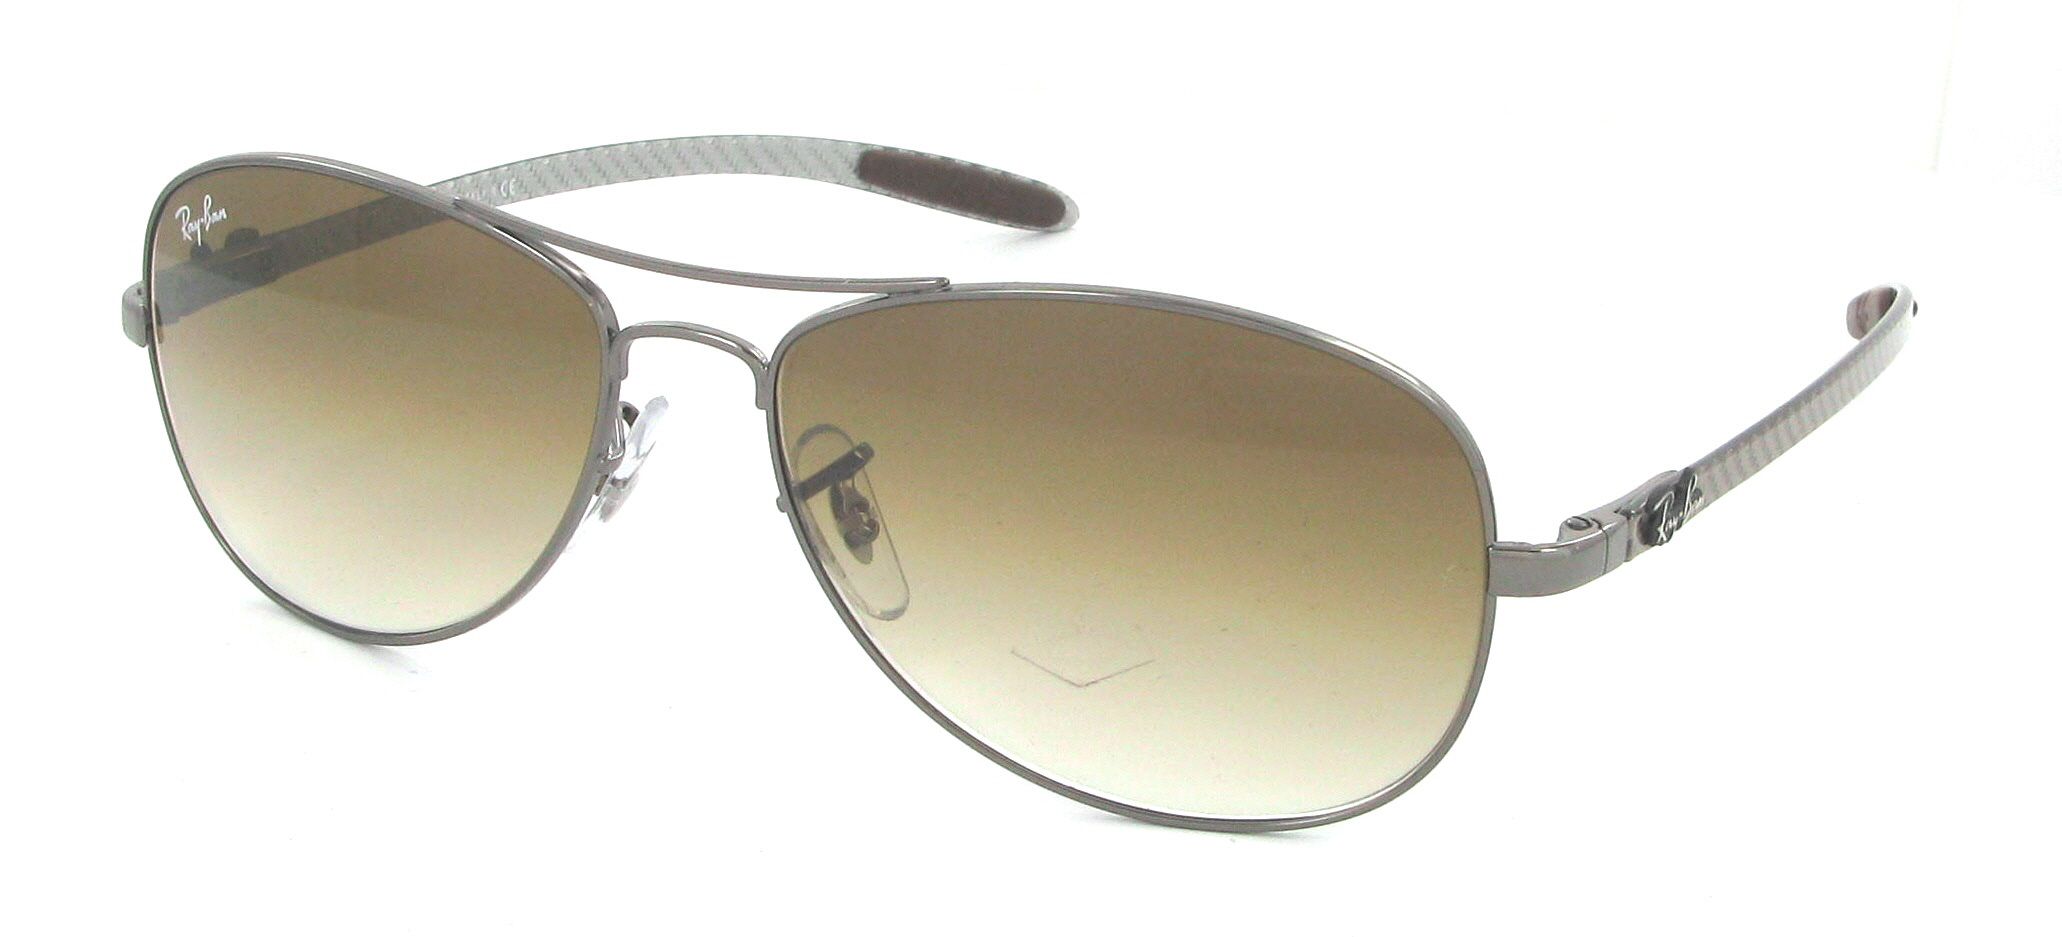 Ray Ban Aviator 3025 Degrade Lens Rb 003 32 | Our Pride Academy